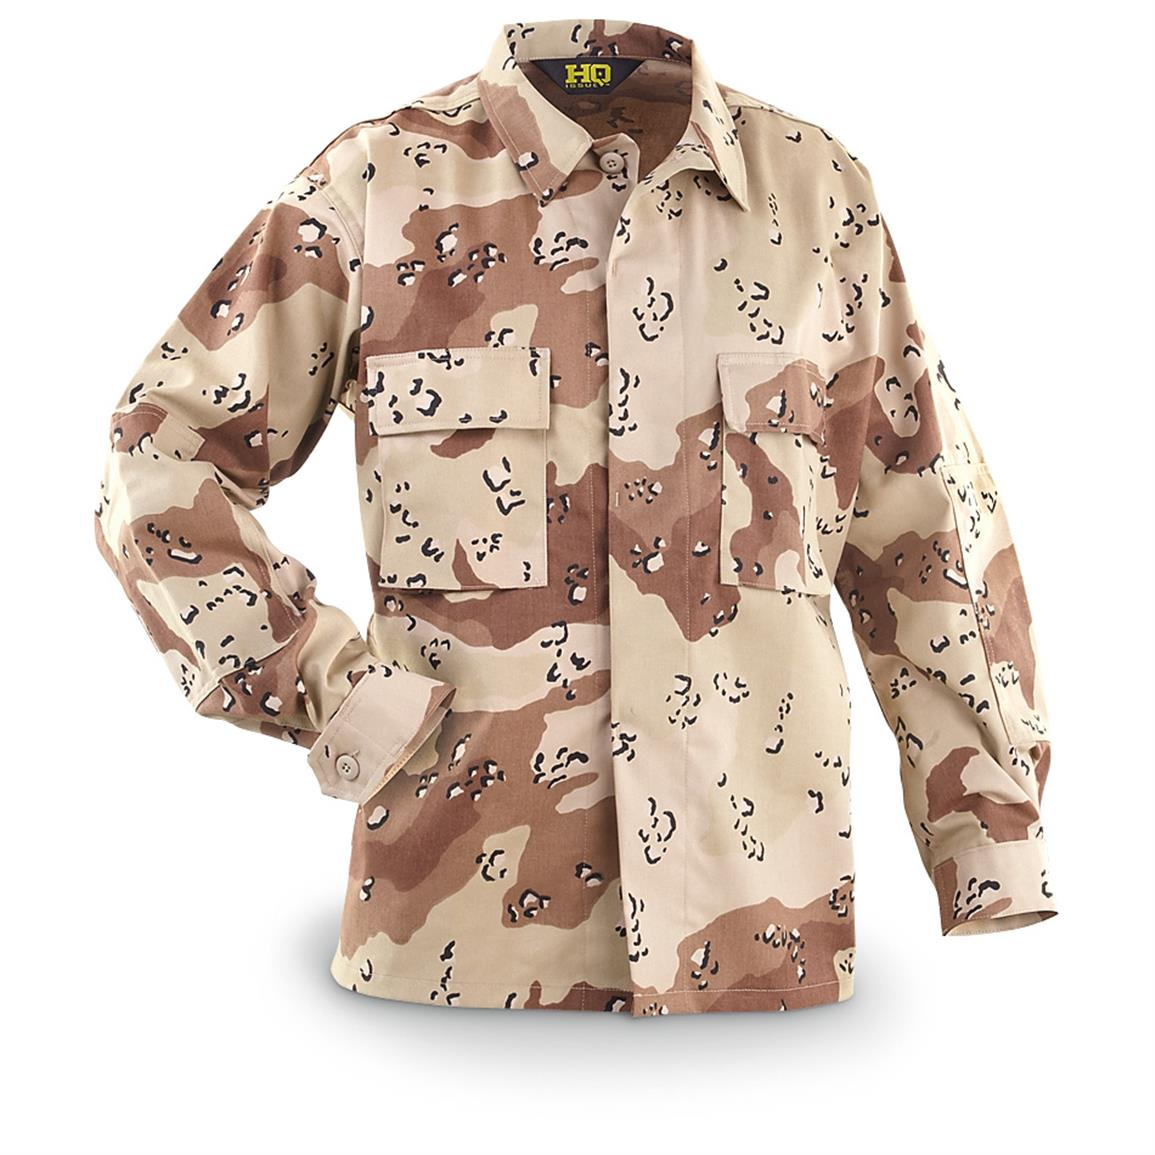 HQ ISSUE Military-style Desert Cotton / Polyester BDU Shirt, 6-color Desert Camo